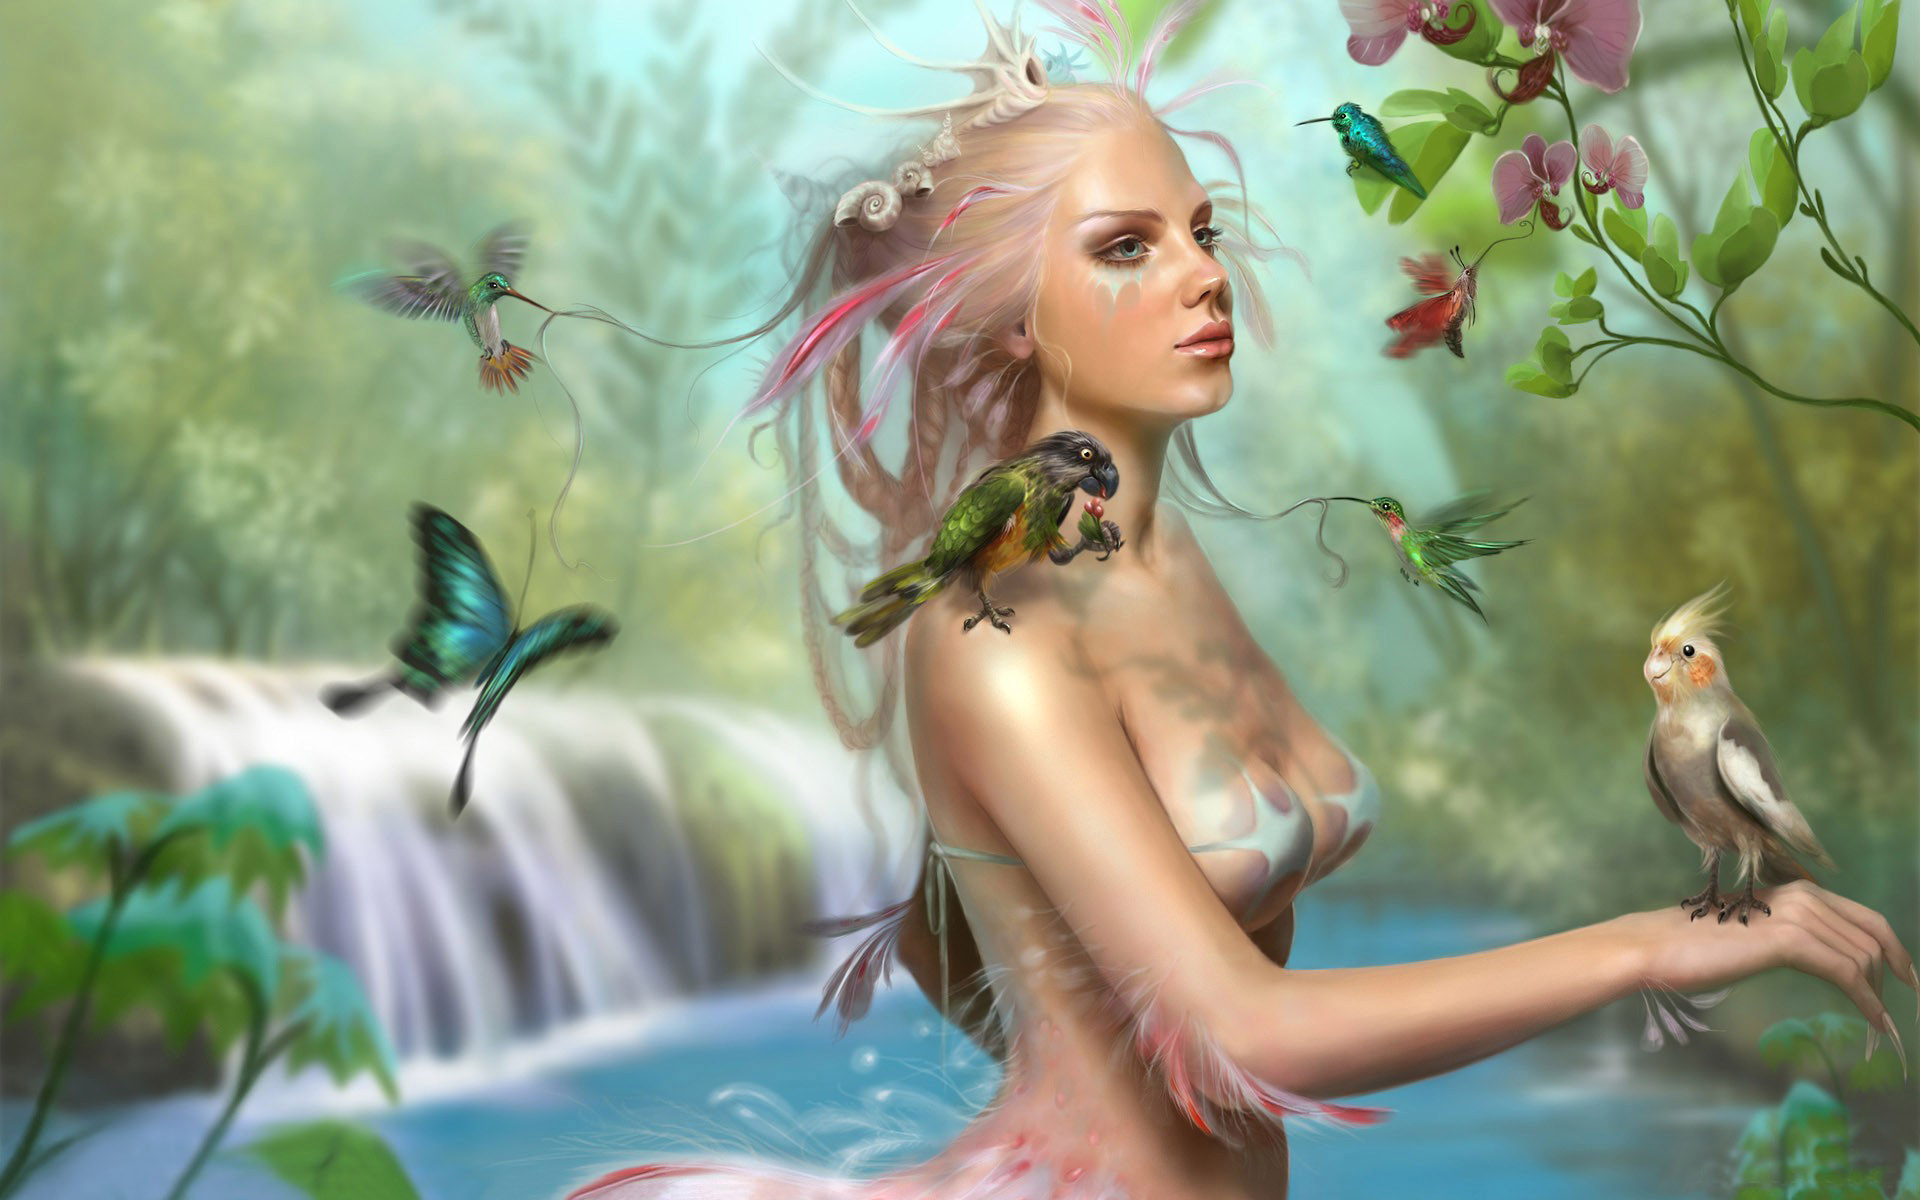 Fantasy mythical girls free desktop wallpapers for widescreen hd fantasy mythical girls free desktop wallpapers for widescreen hd and mobile voltagebd Gallery